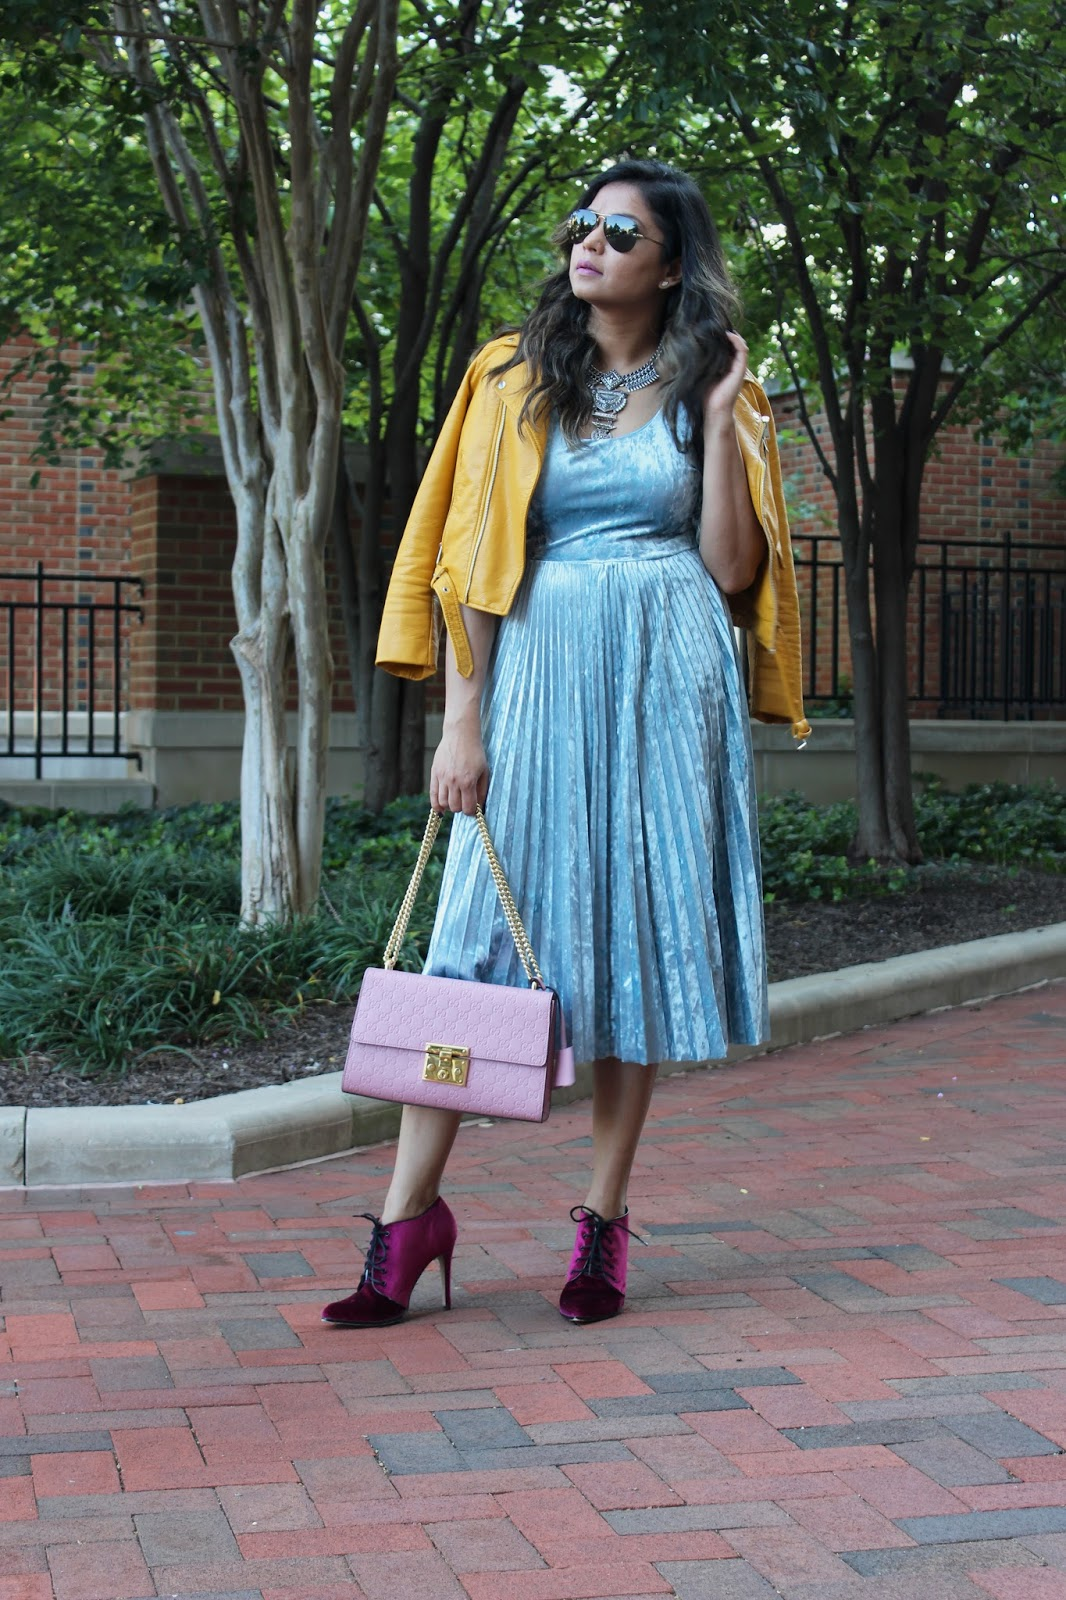 how to wear a silver statement jewelry, bauble bar targte necklace, bauble bar, fashion blogger, dc blogger, street style, eva mendes blue velvet dress, gucci bag, velvet pumps, fall style , myriad musings